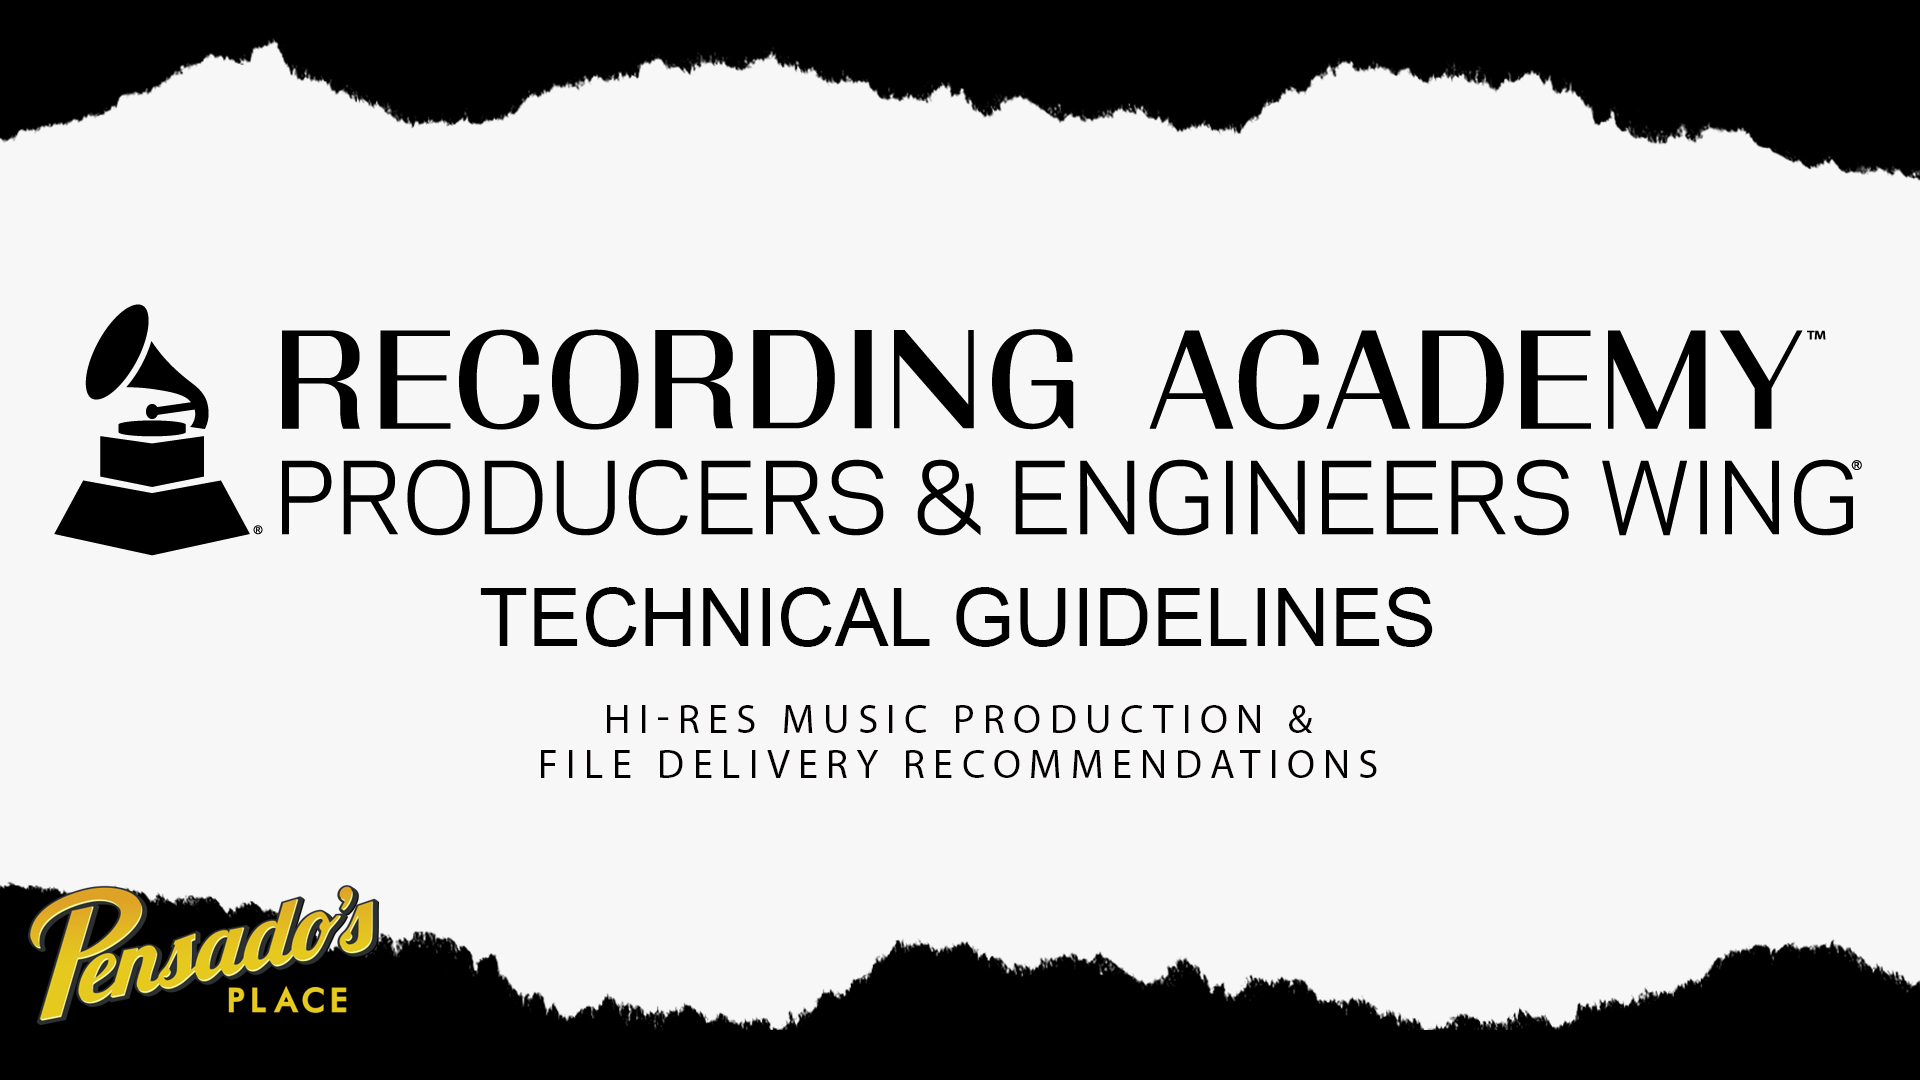 Recording Academy Producers & Engineers Wing